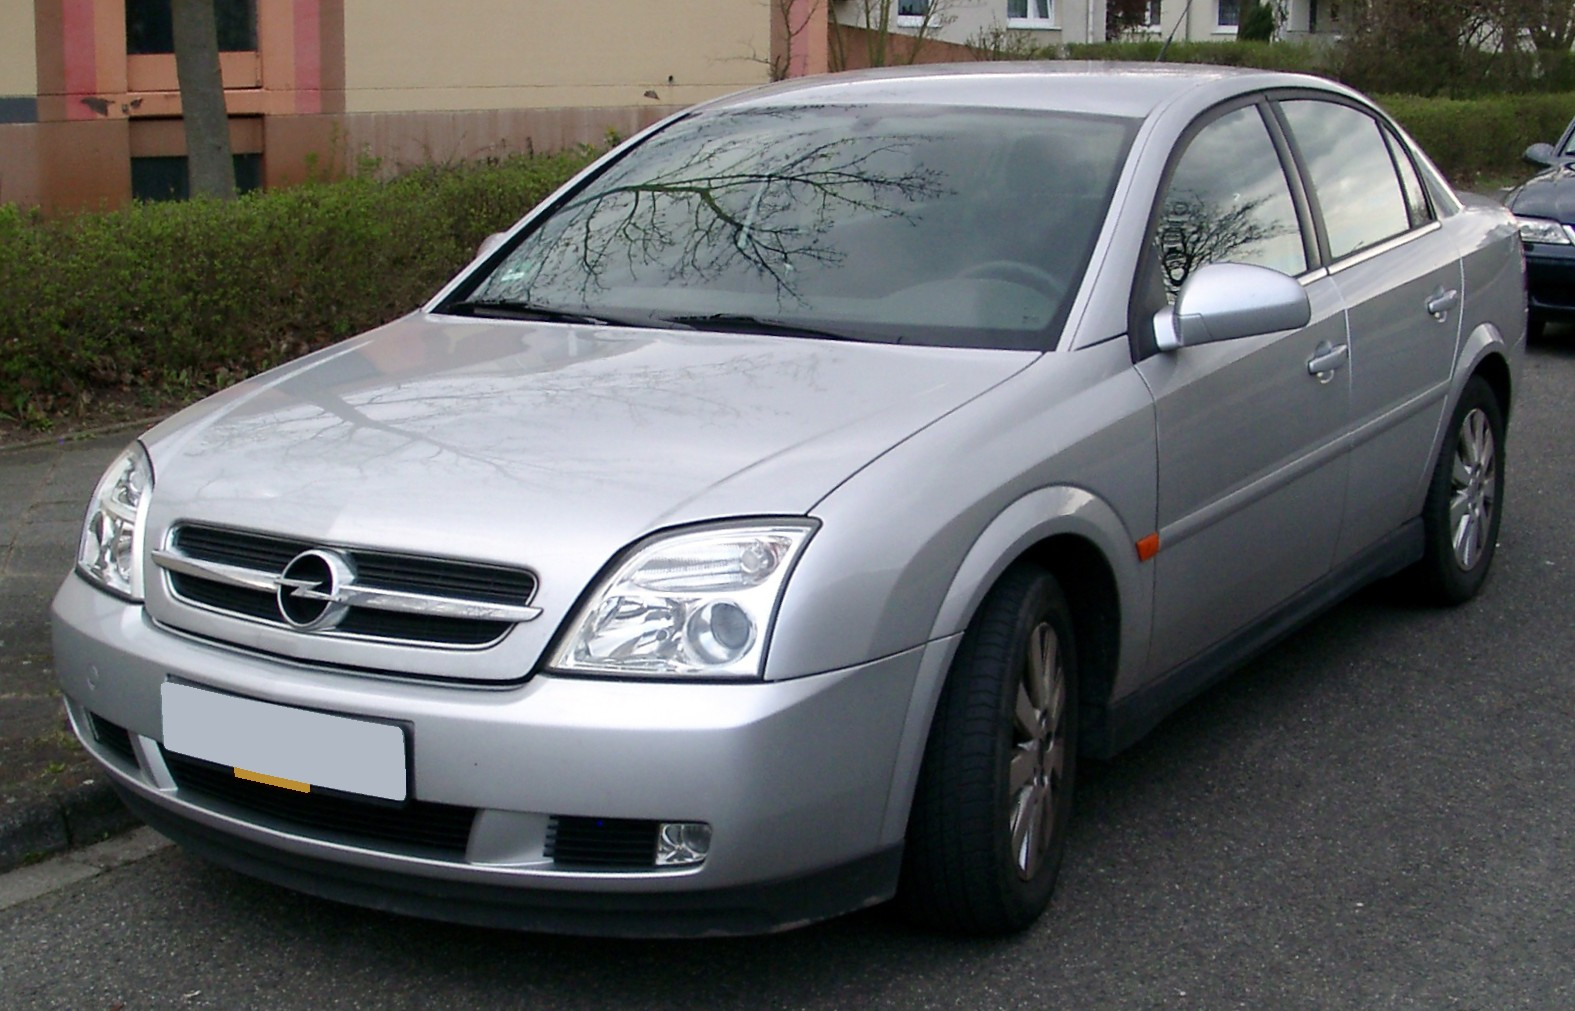 Pictures of holden vectra hatcback (b) 2005